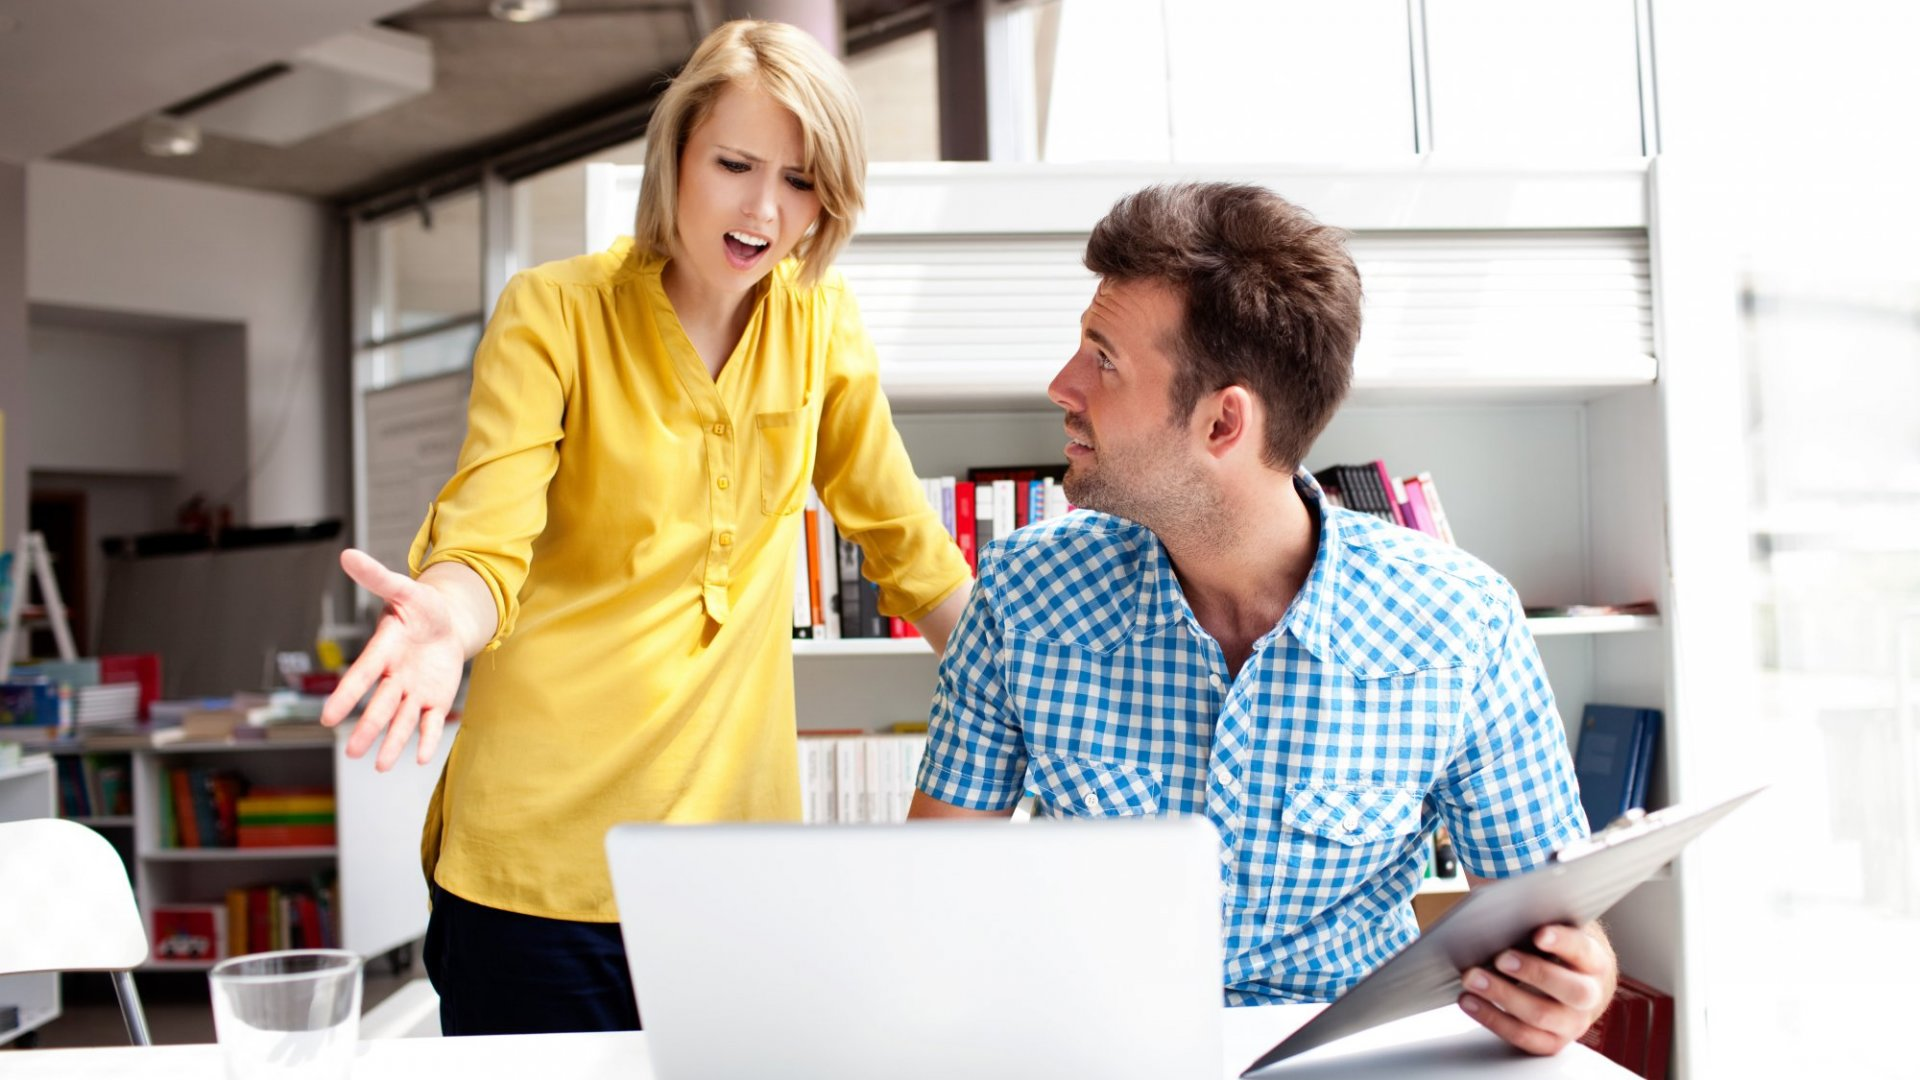 How to Stop Your Boss from Owning Your Side Hustle